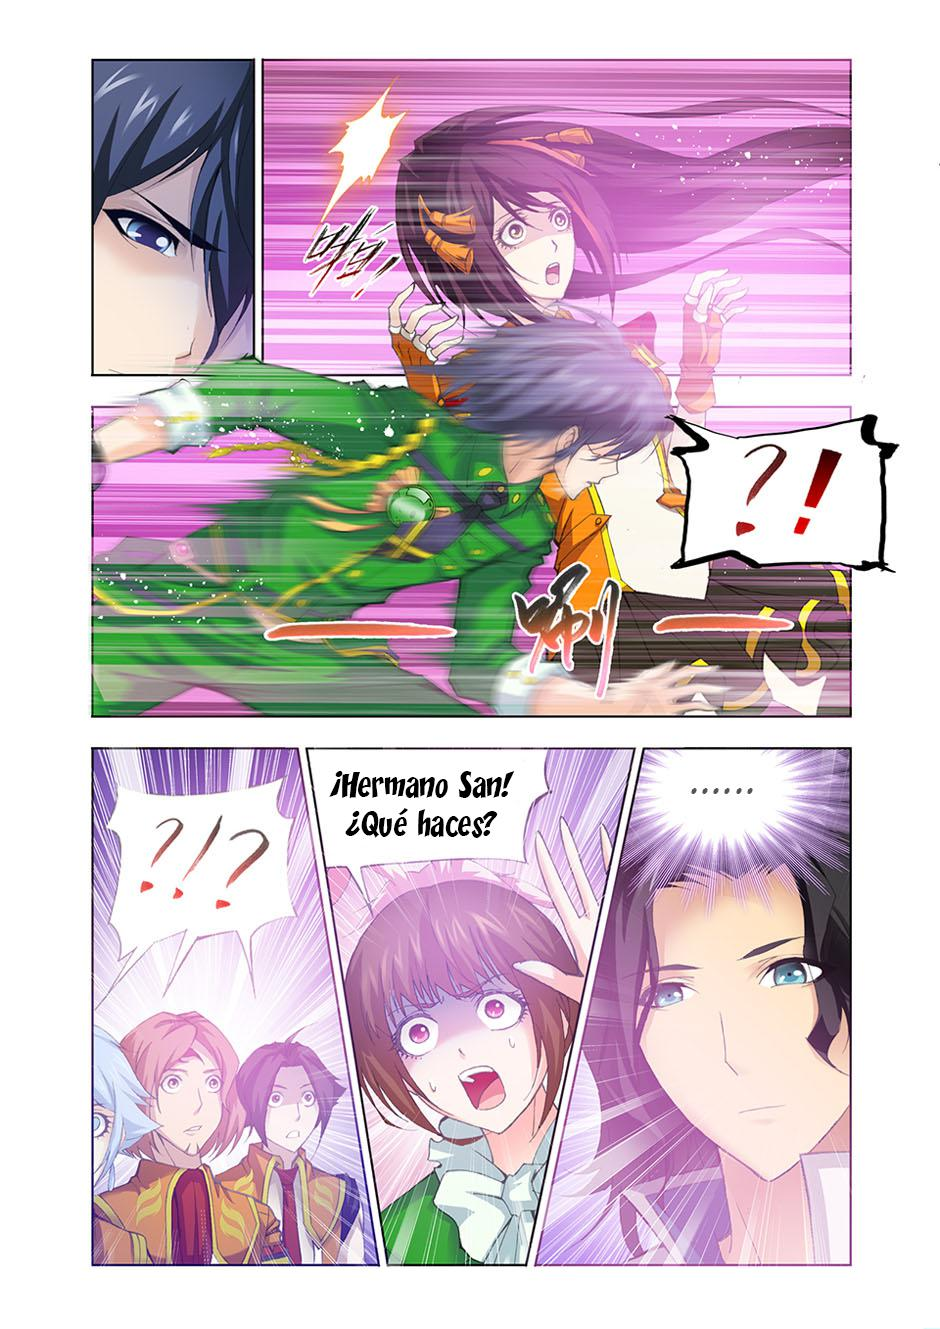 http://c5.ninemanga.com/es_manga/18/16210/417583/ff63b41c6a2945db83d798e1c7c7dccd.jpg Page 4